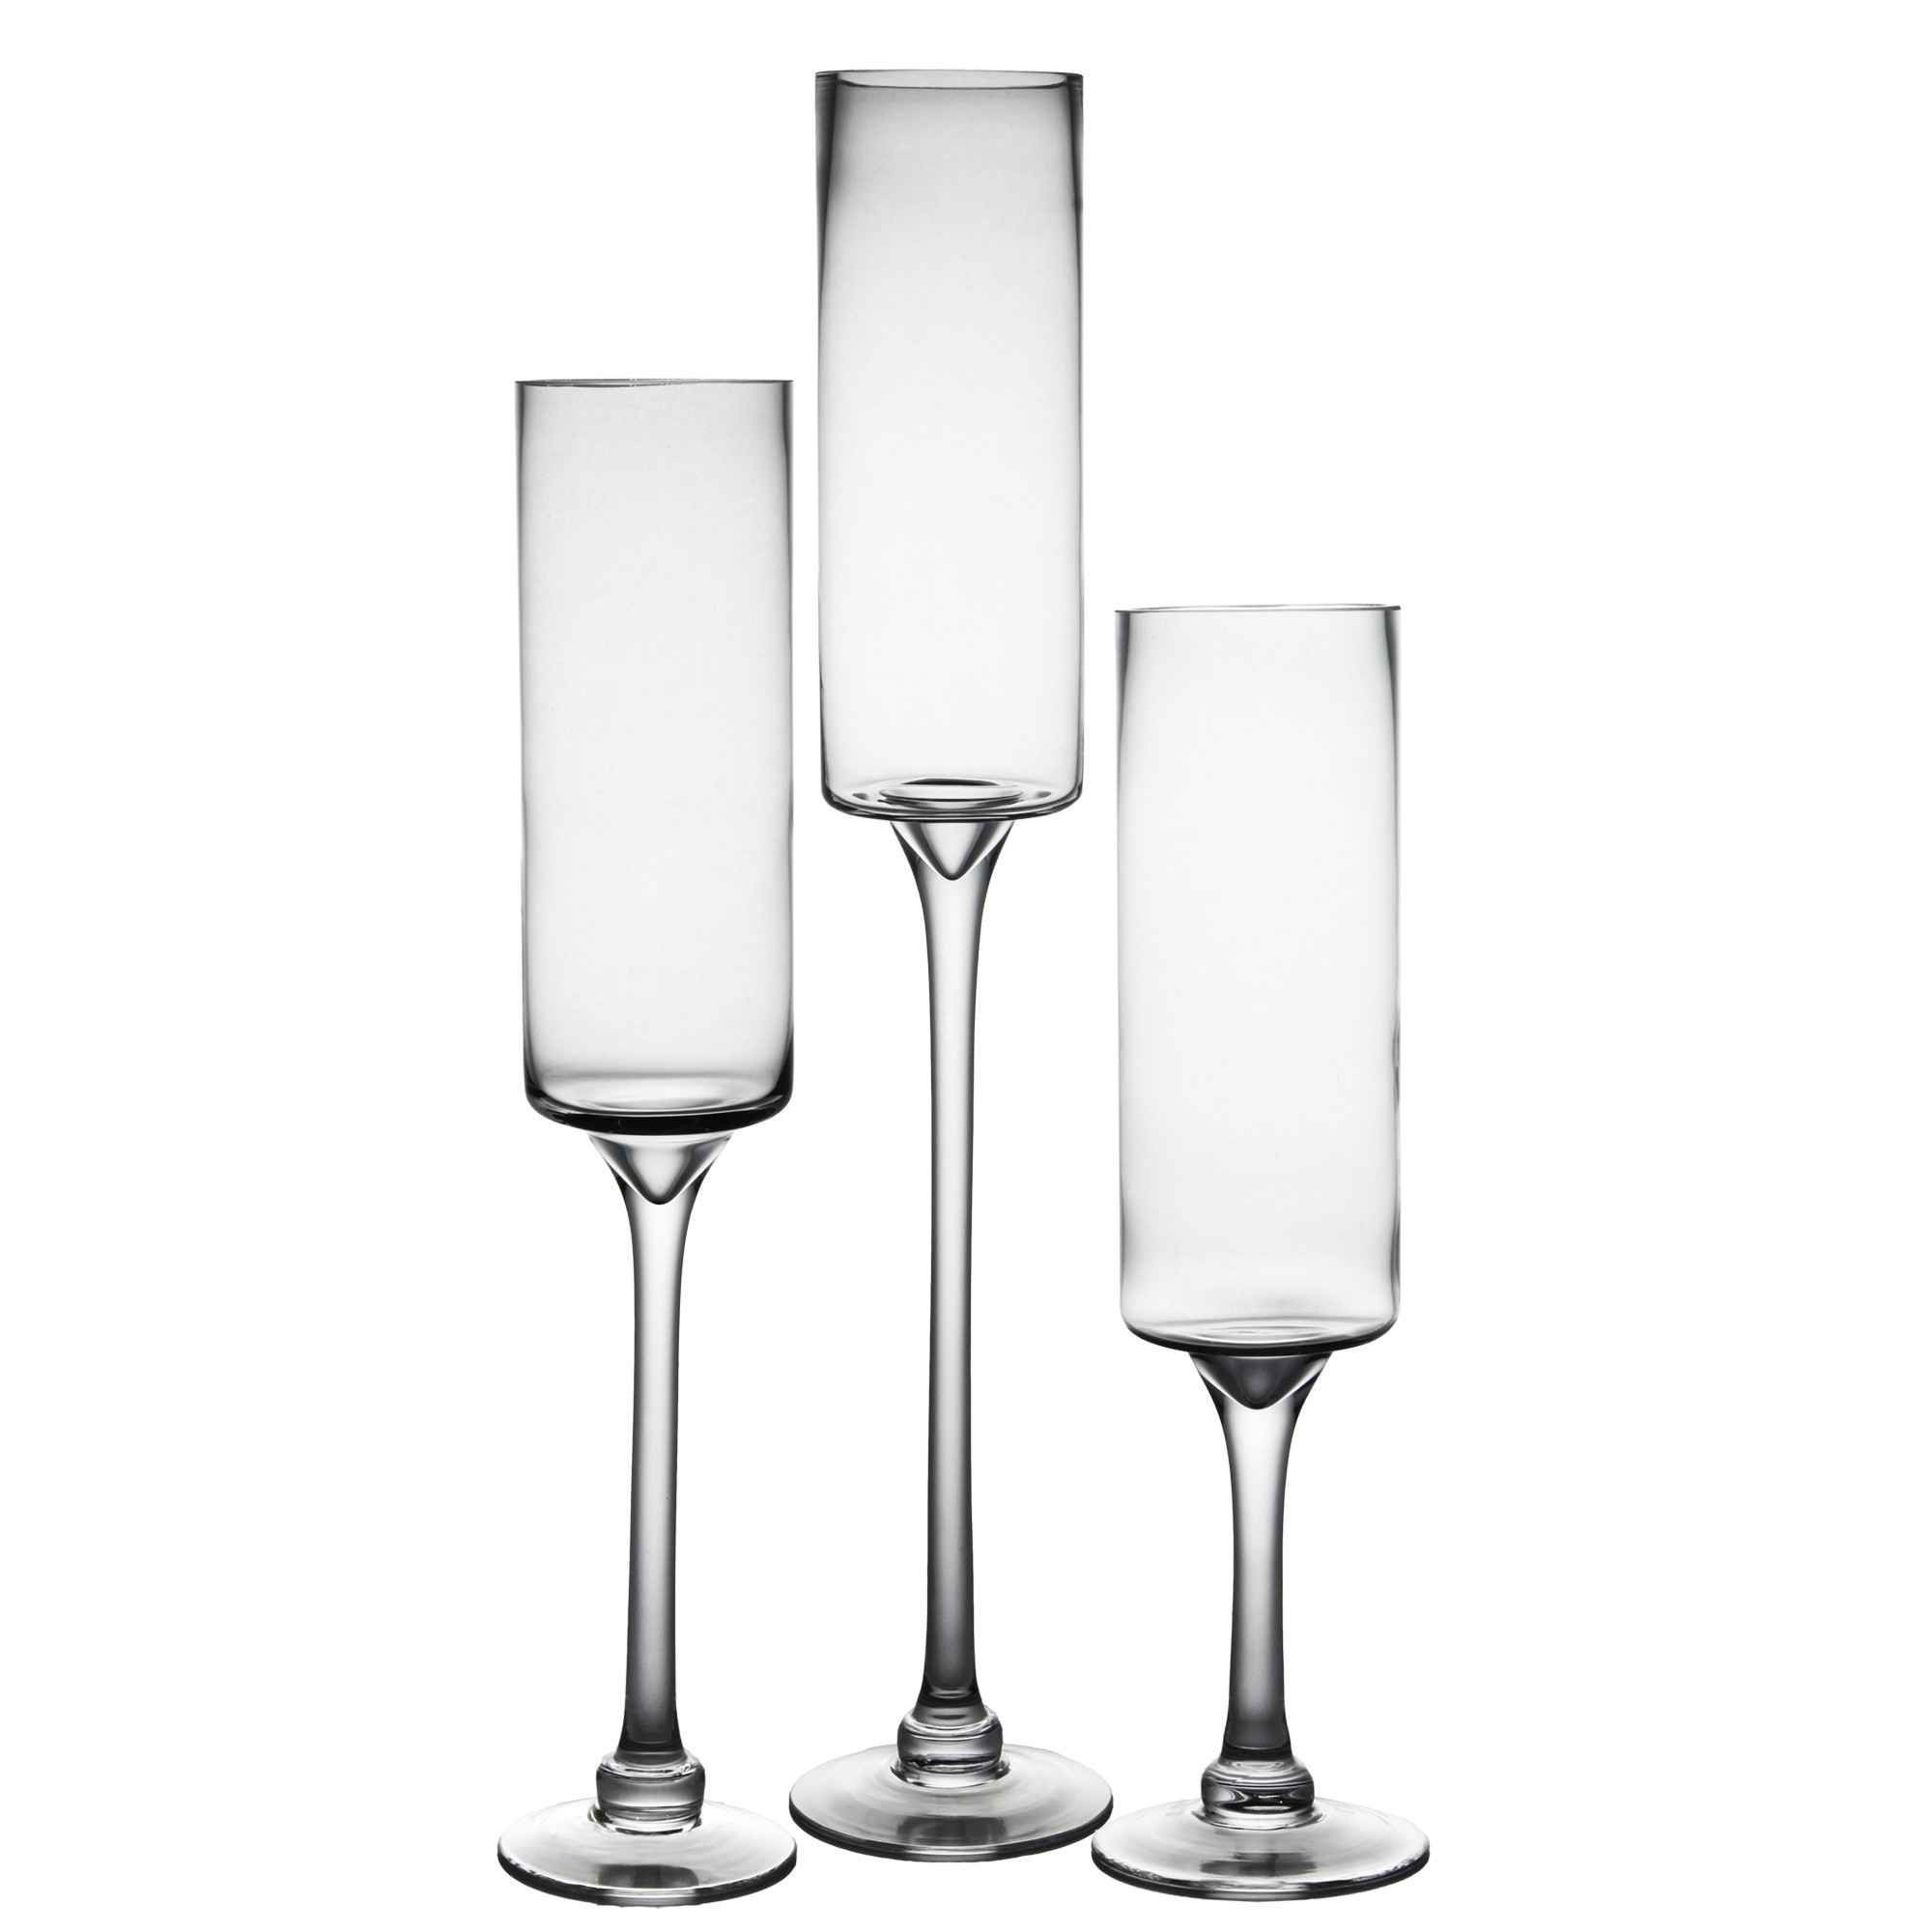 cheap tall plastic vases of big glass vase beautiful l h vases 12 inch hurricane clear glass with big glass vase beautiful l h vases 12 inch hurricane clear glass vase i 0d cheap in